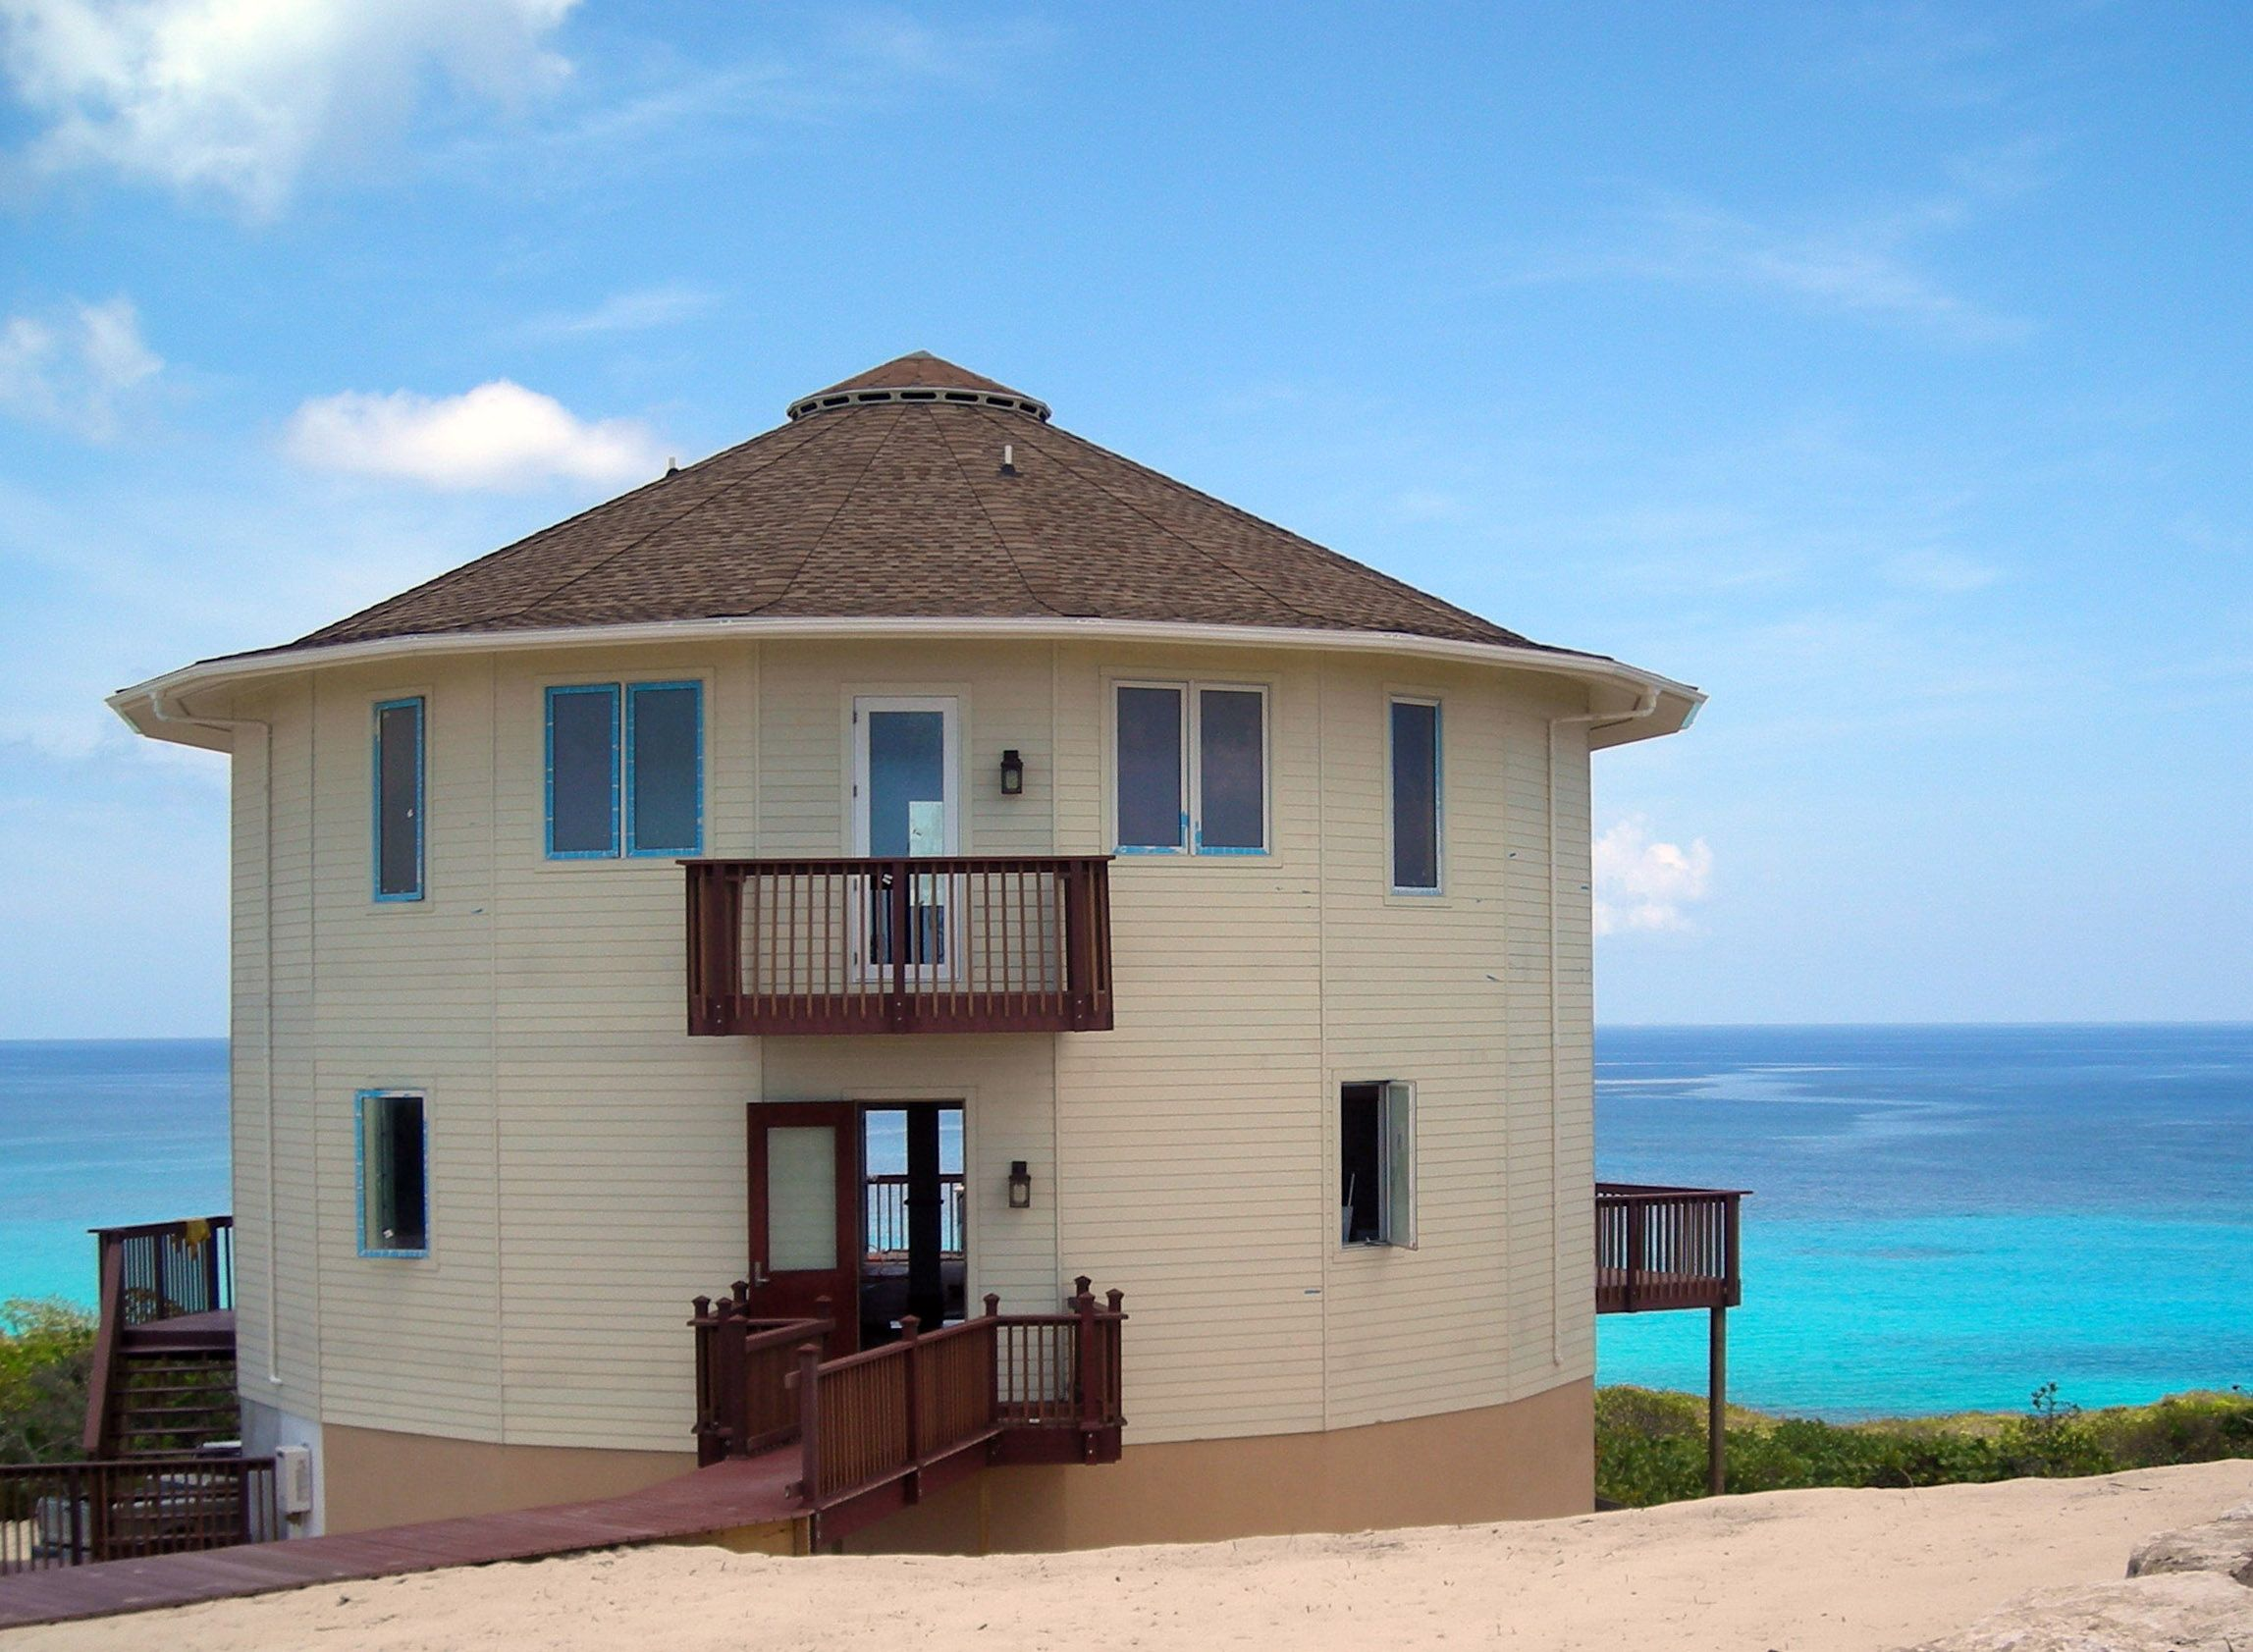 A Stunning Roundhouse Because You Know You Want A Hurricane Resistant Home When You Re Building In The Caribbea Round House Plans Round House Caribbean Homes